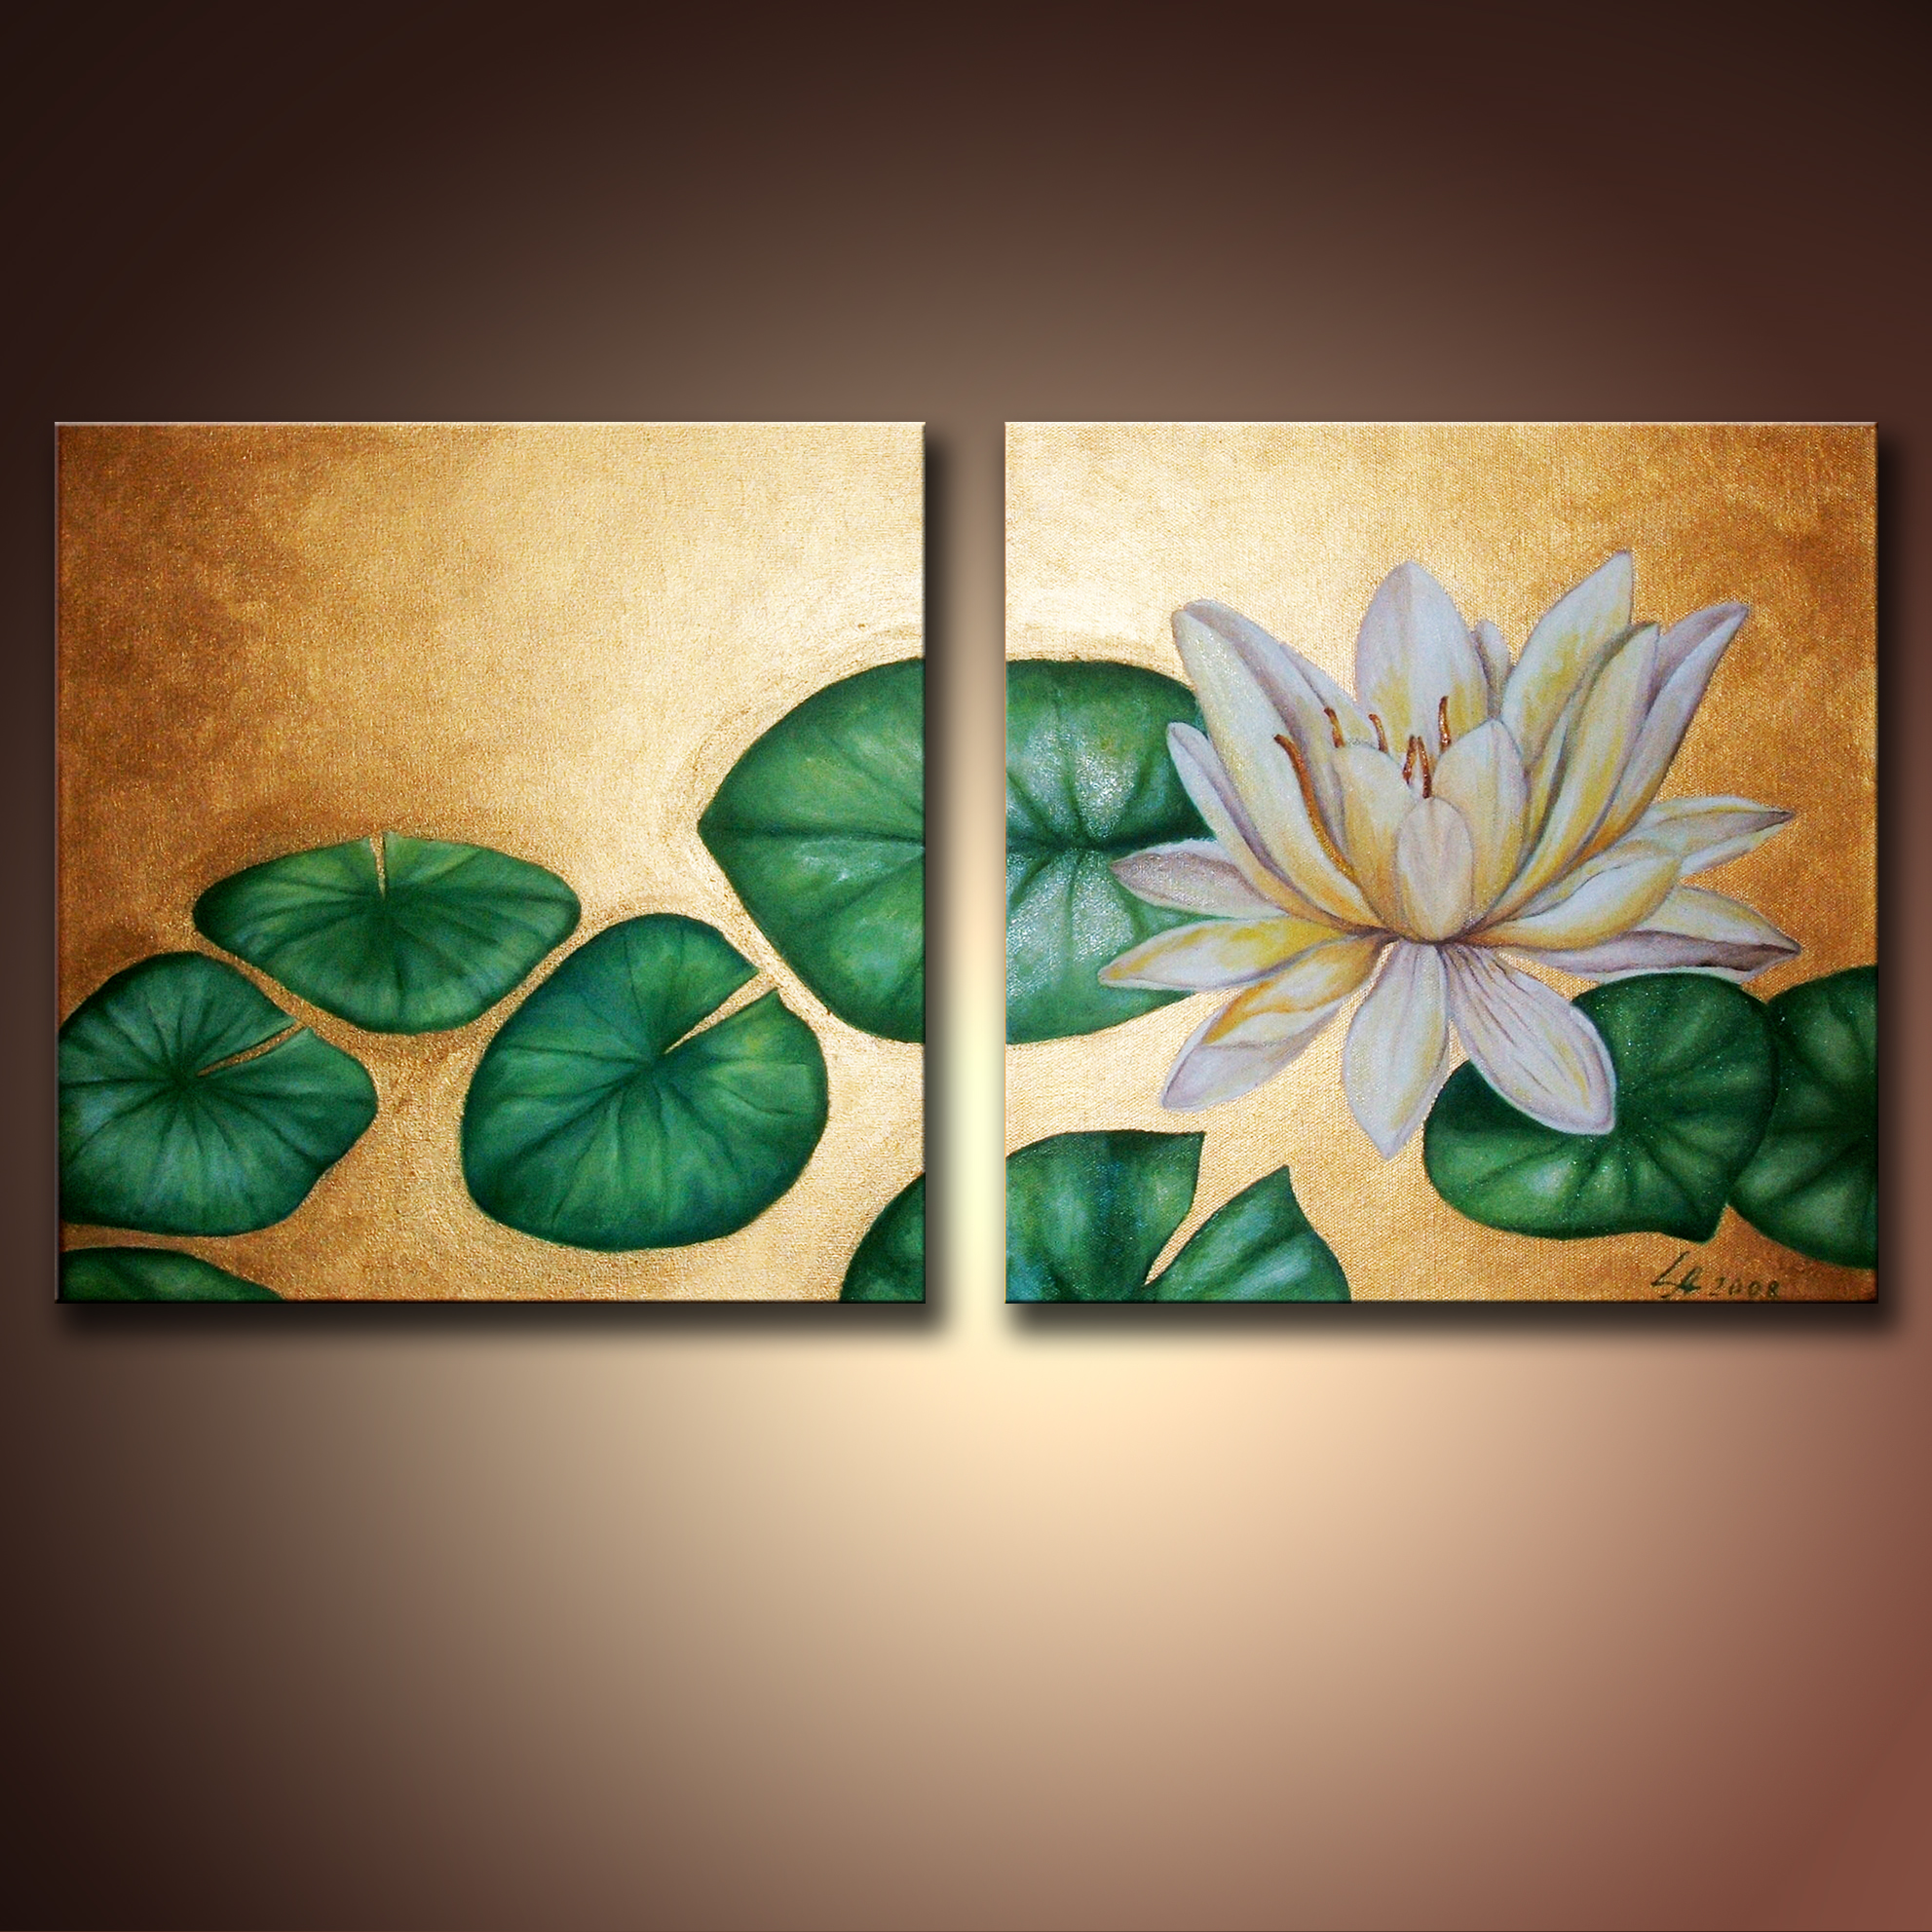 Online Fine Art Gallery And Store Buy And Commission Art